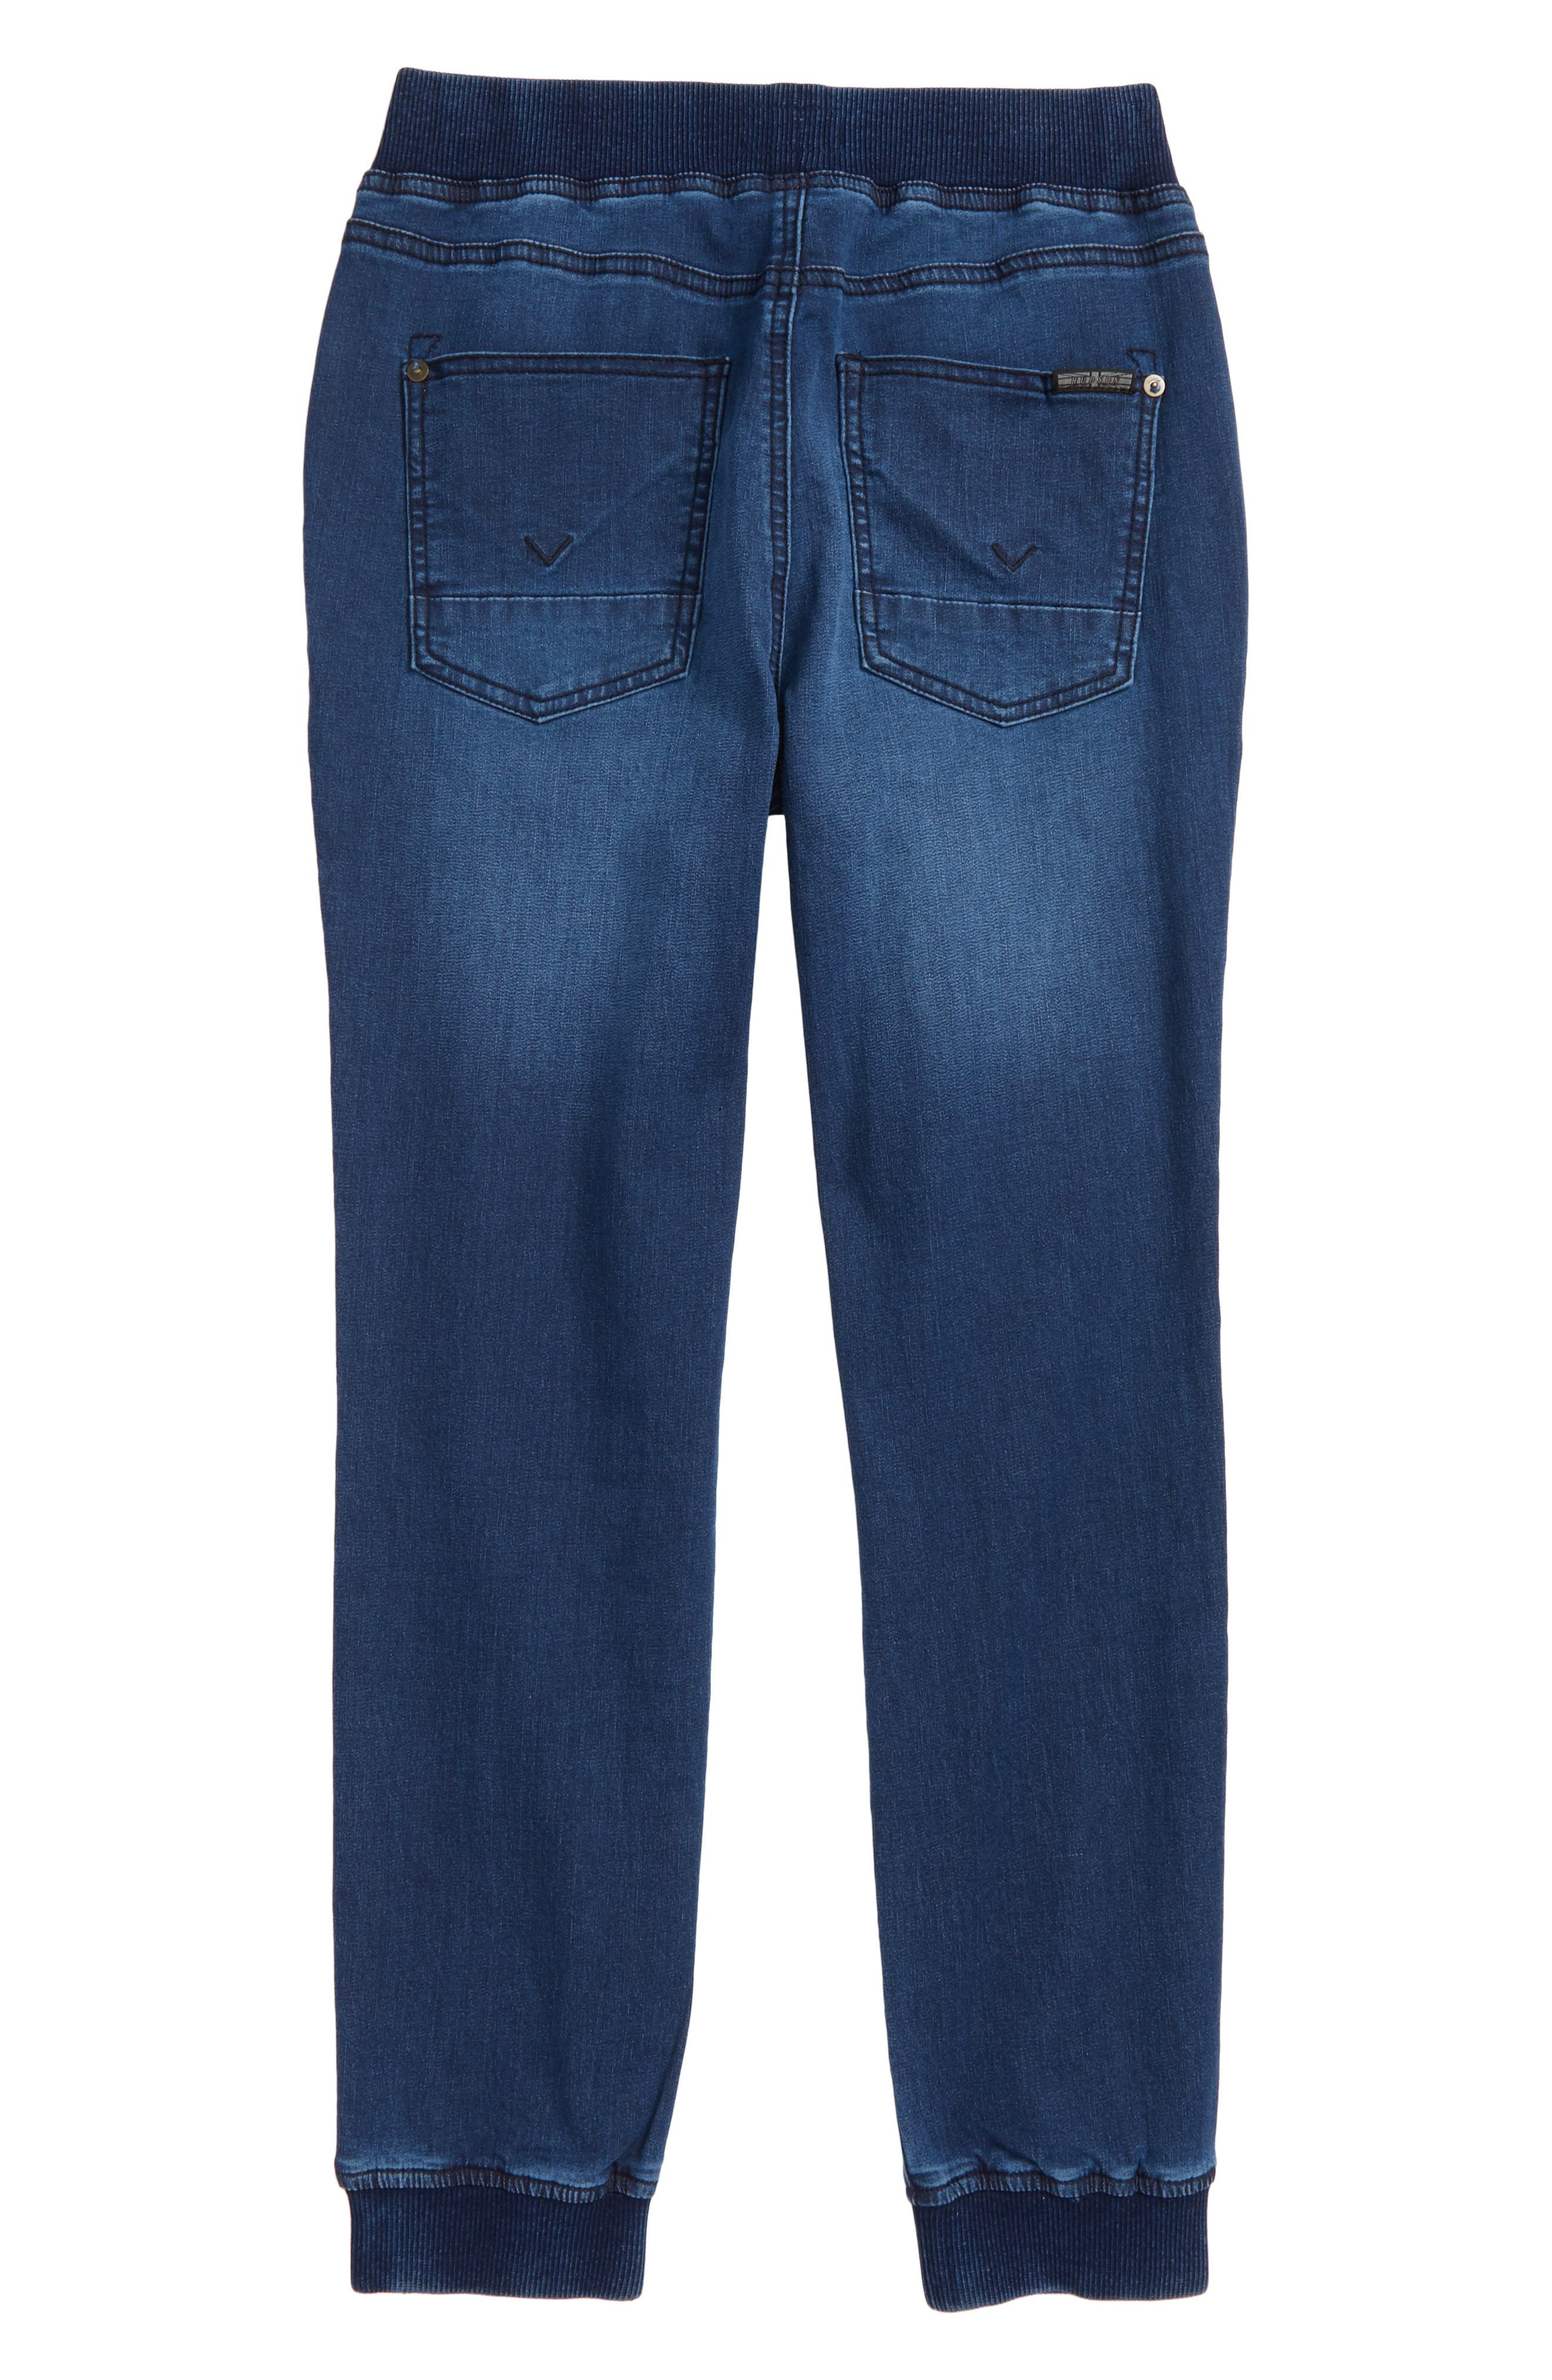 Nate Denim Jogger Pants,                             Alternate thumbnail 2, color,                             470